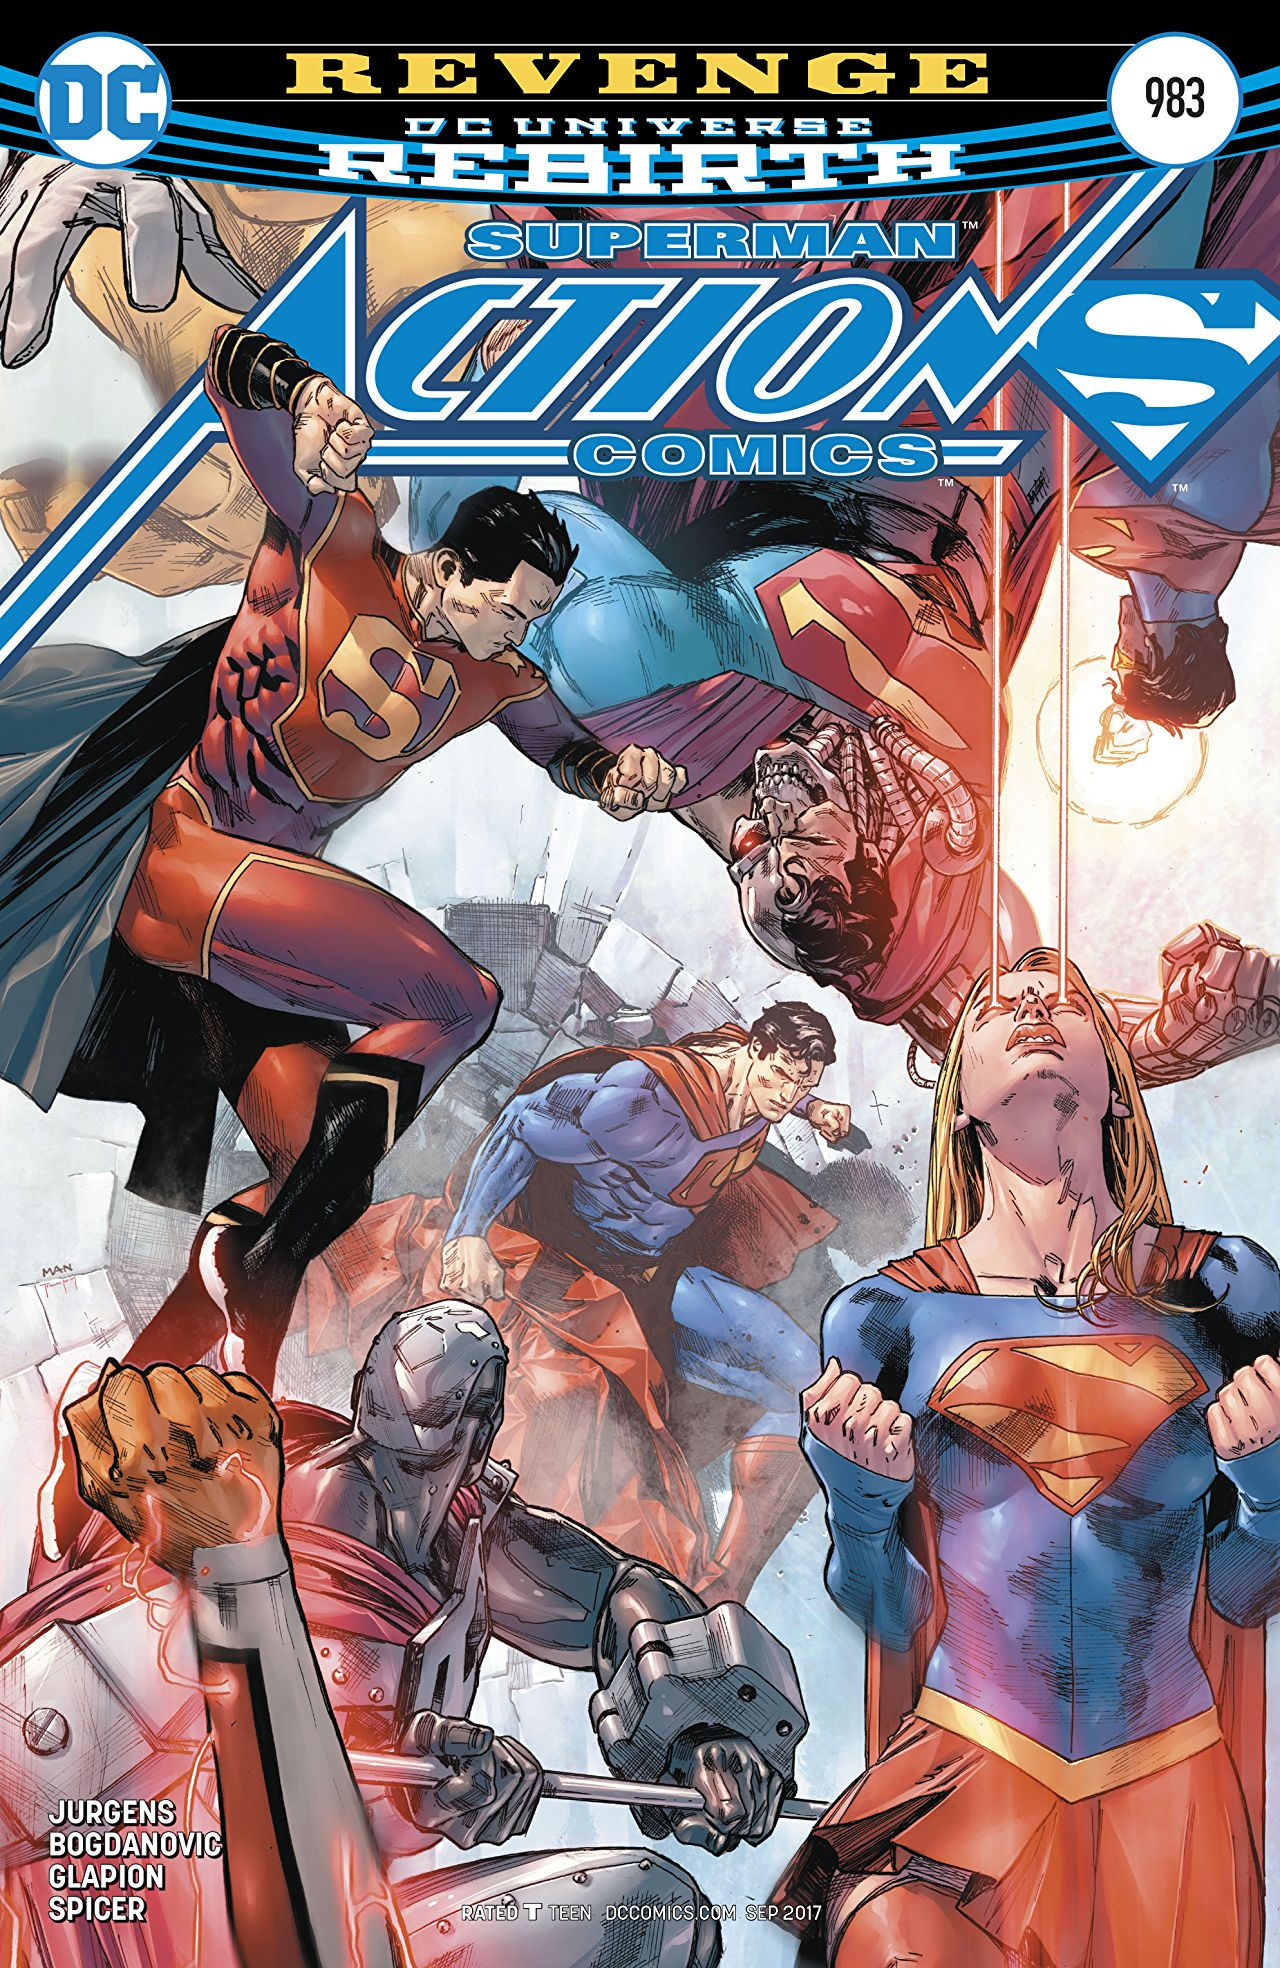 review ACTION COMICS #983